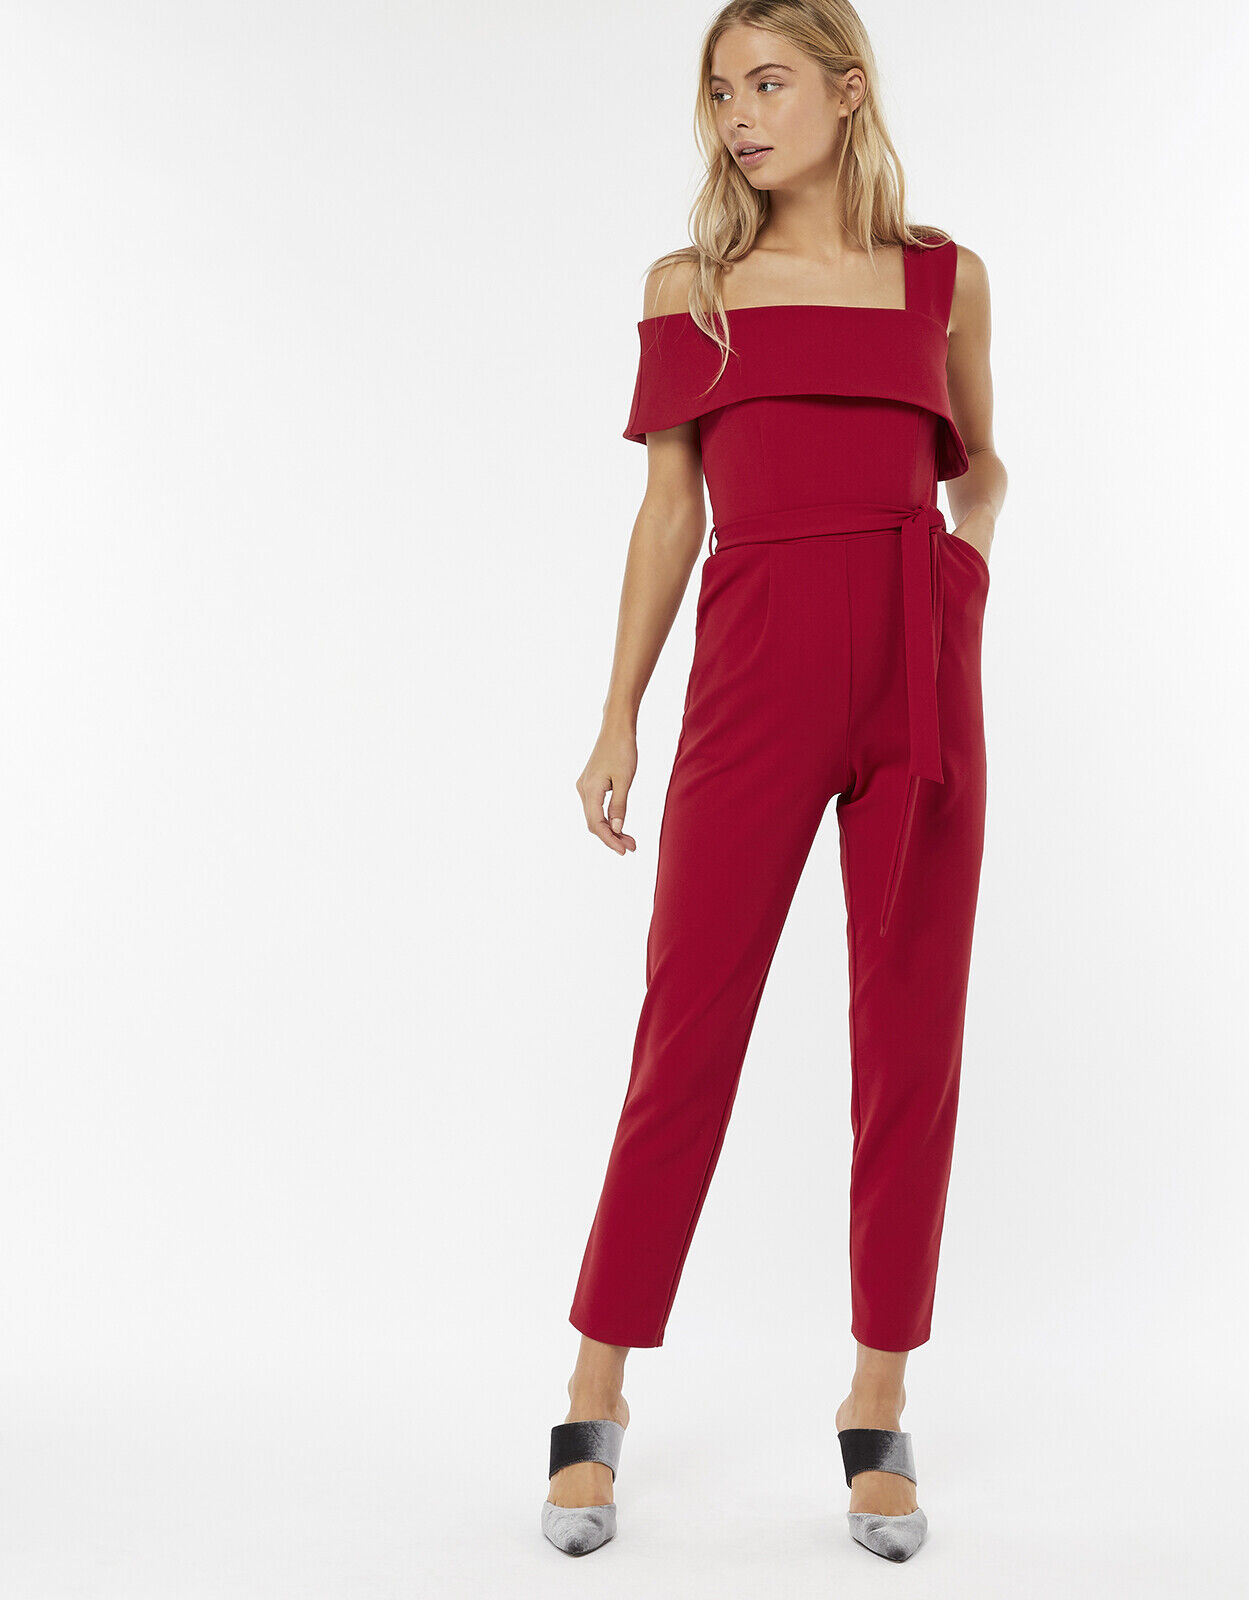 Ladies Monsoon Red Jumpsuit Size 22 NWT Wedding Holidays Stunning